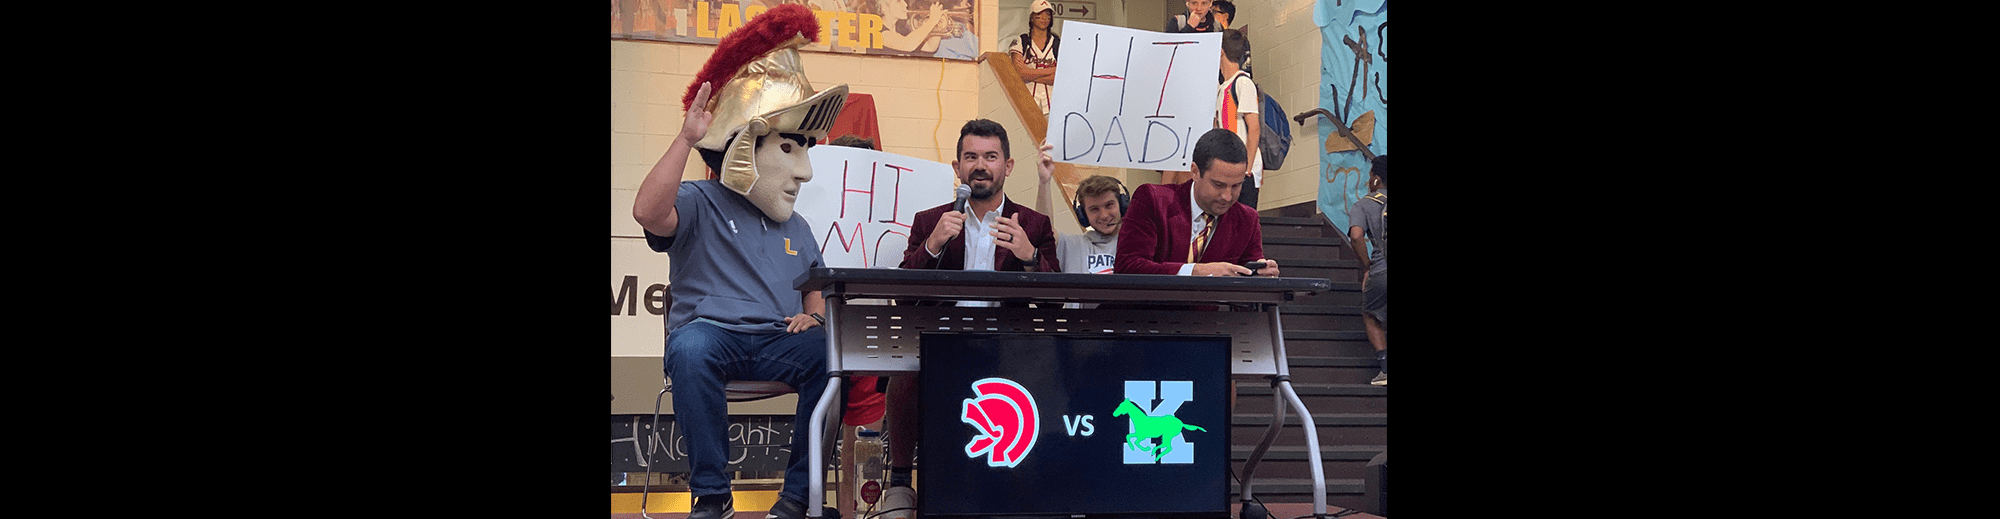 Trojan mascot sits next to a man with a microphone as students hold signs in the background